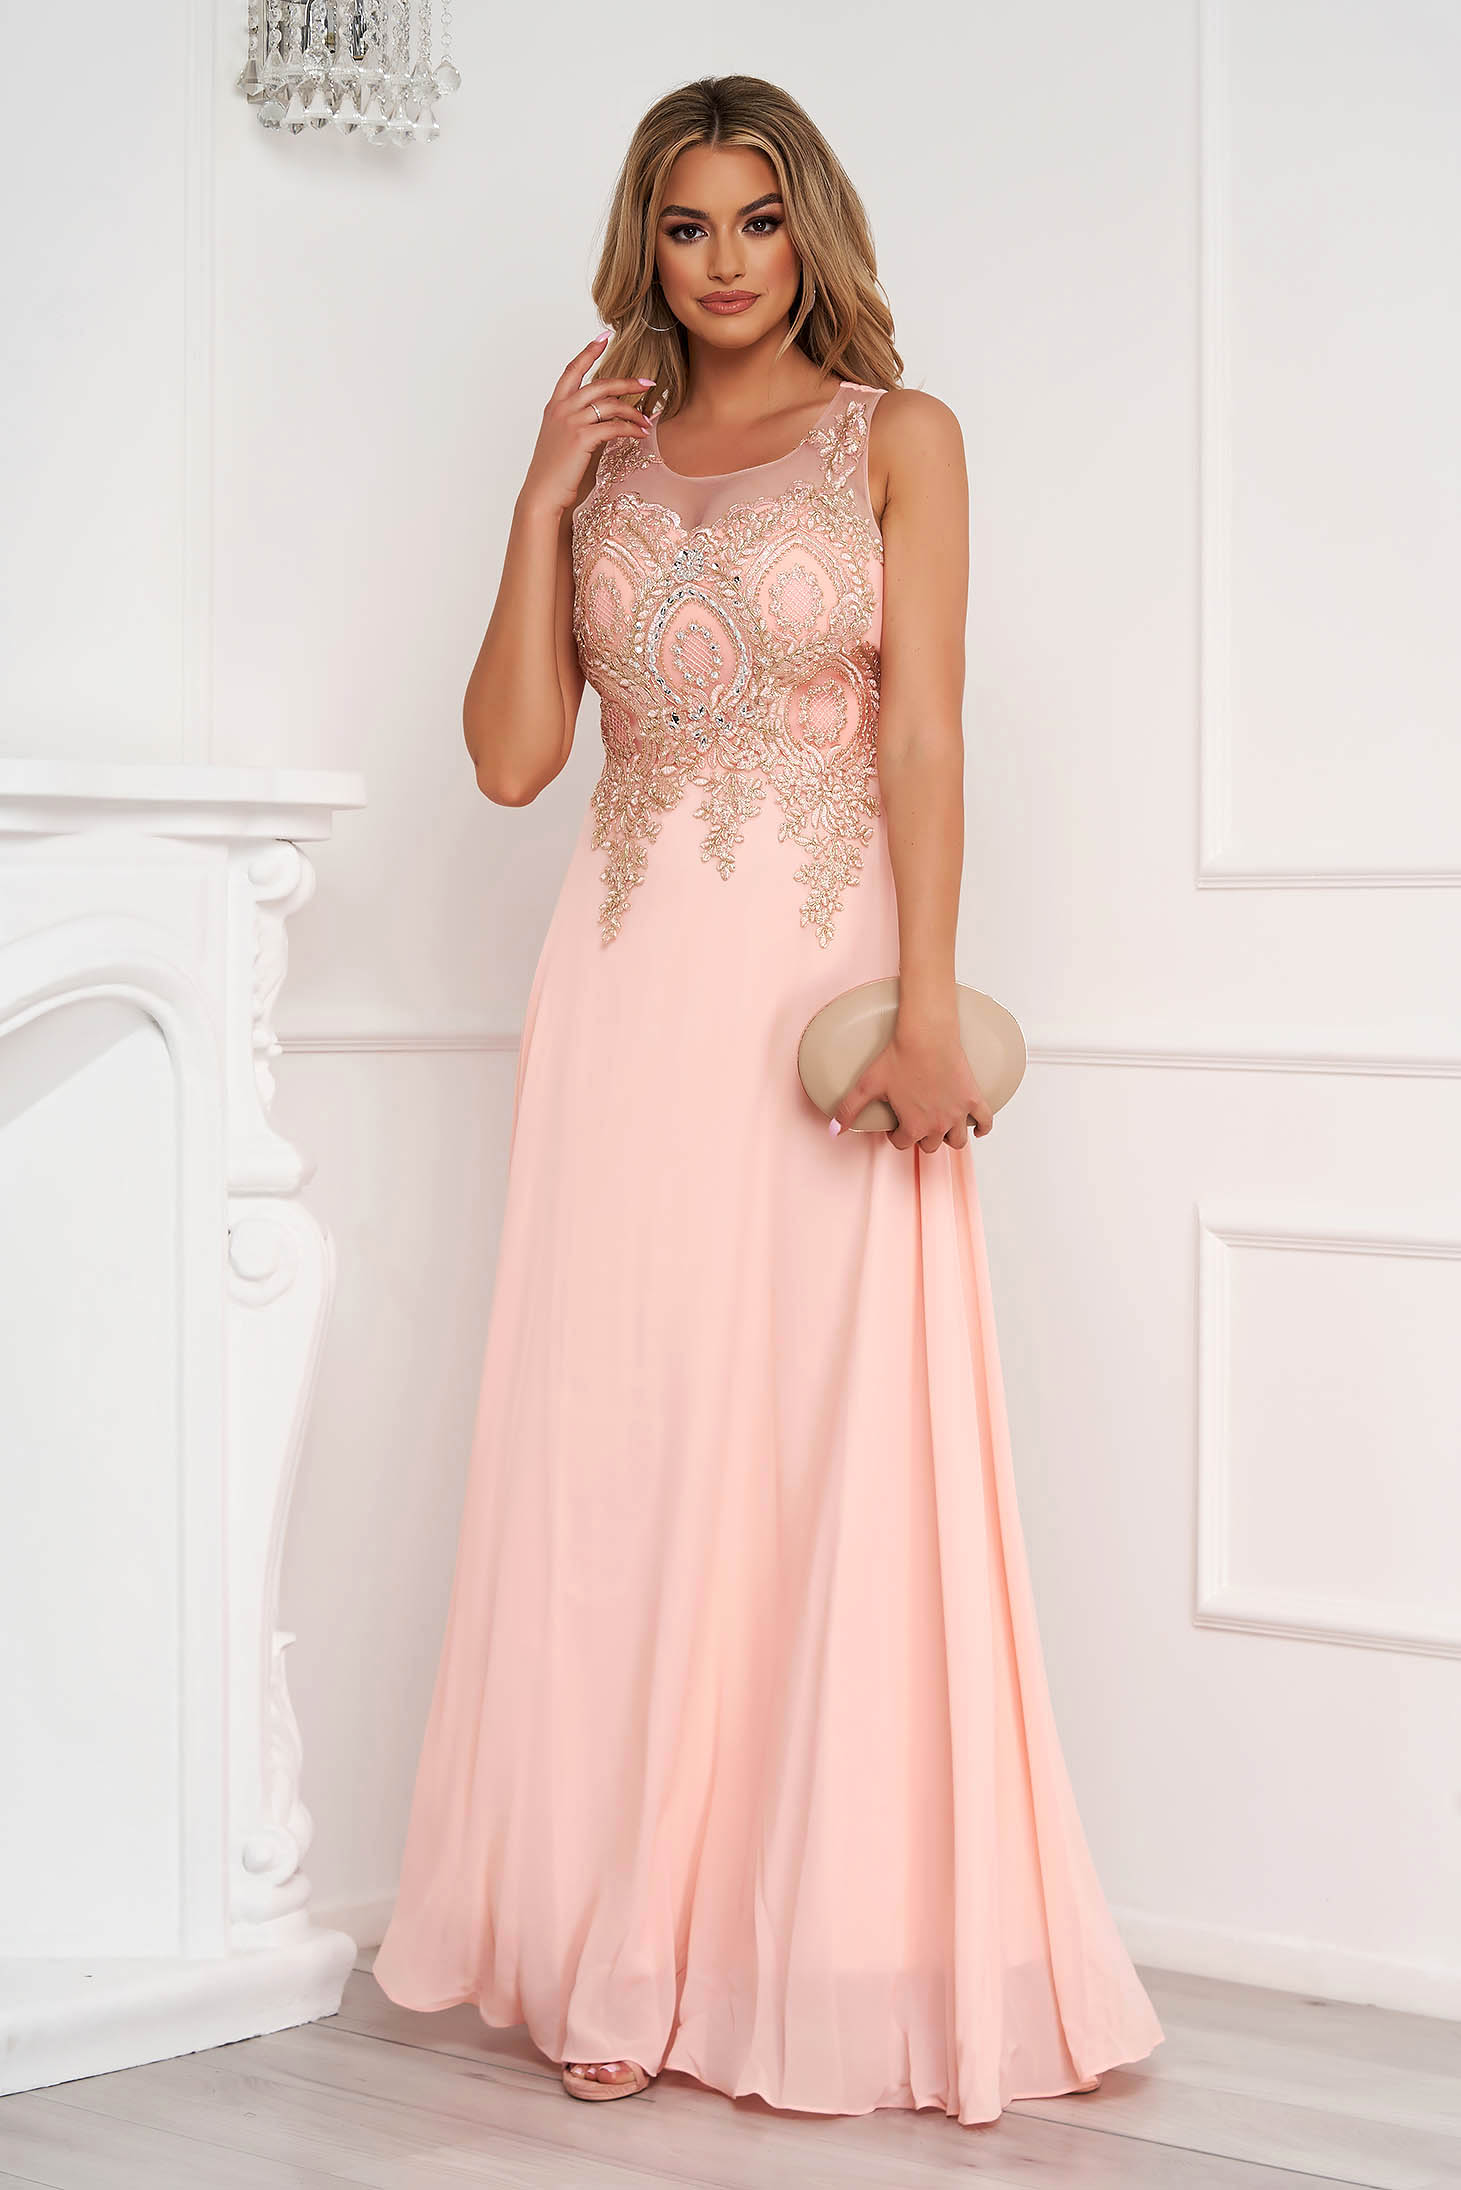 Peach dress long occasional cloche from tulle front embroidery with crystal embellished details